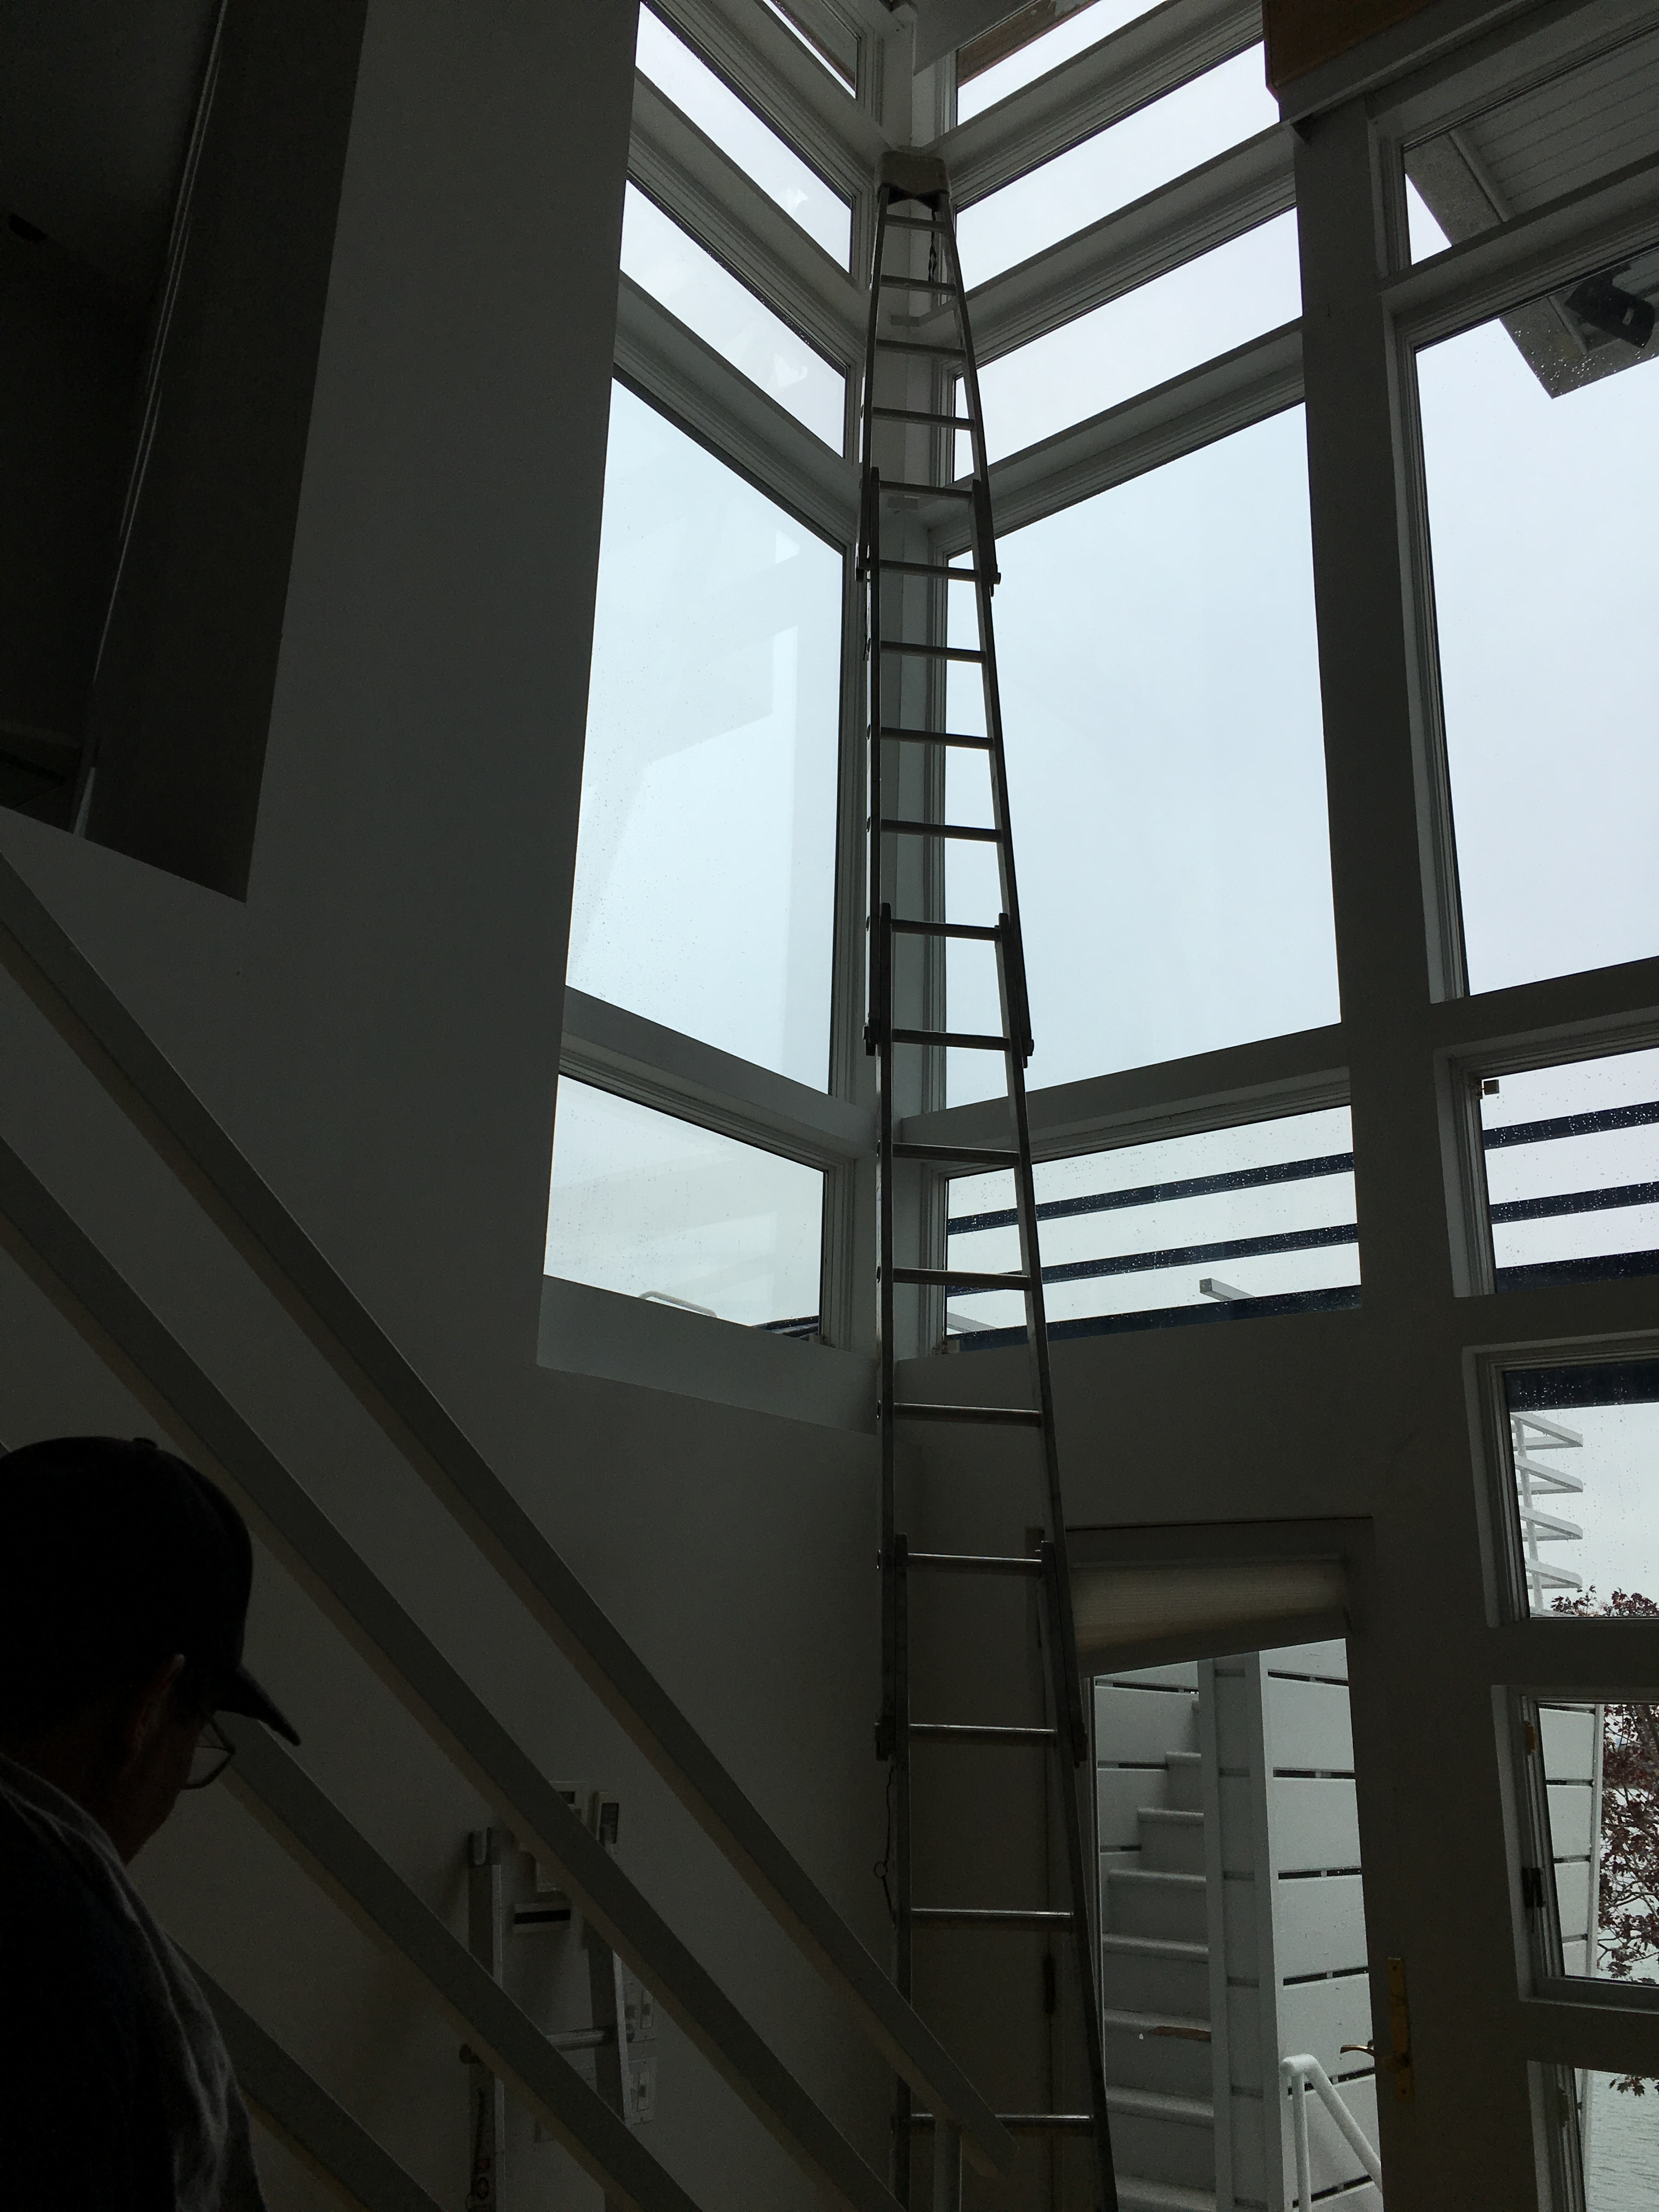 Sectional ladders  King  Commercial  Window